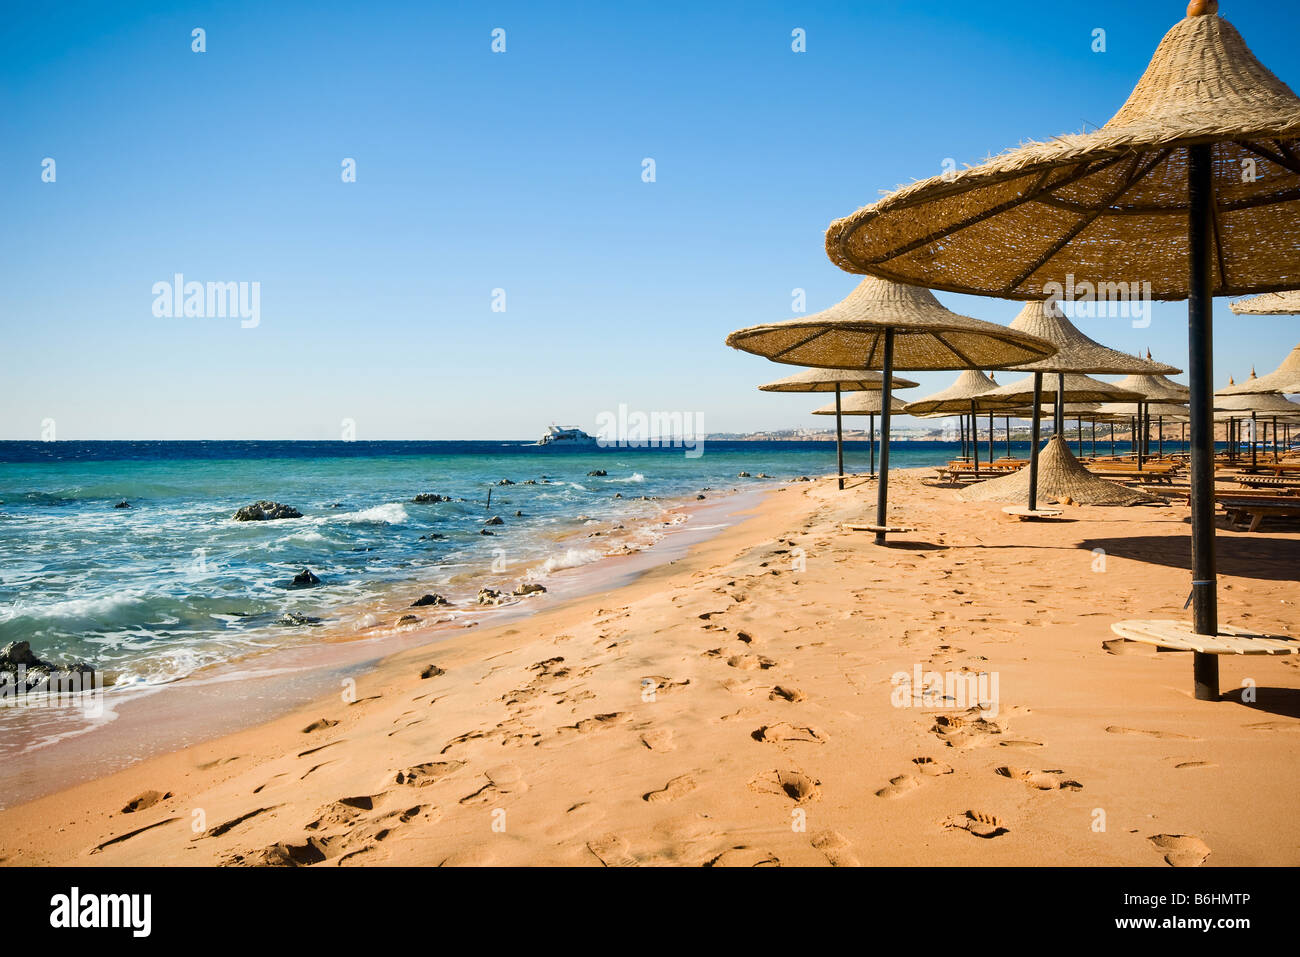 The coast of sharm el sheikh in Egypt - Stock Image